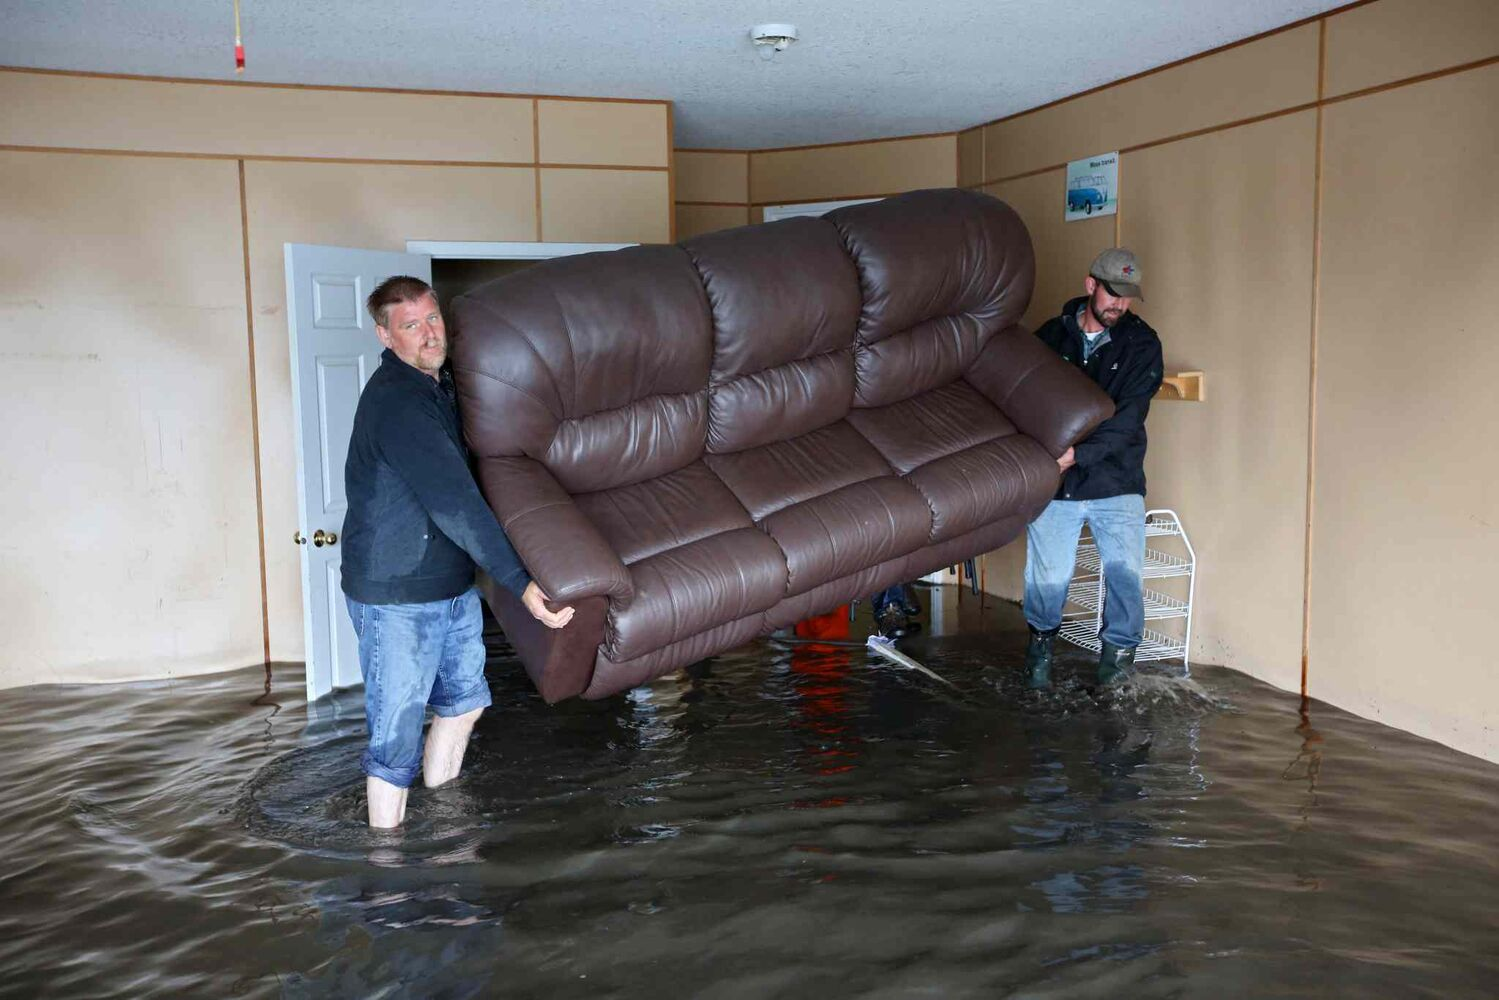 Mr. Froese and Ivan Penner carry a couch from the flooded home of Greg and Amy Baerg to a waiting trailer in Cromer.